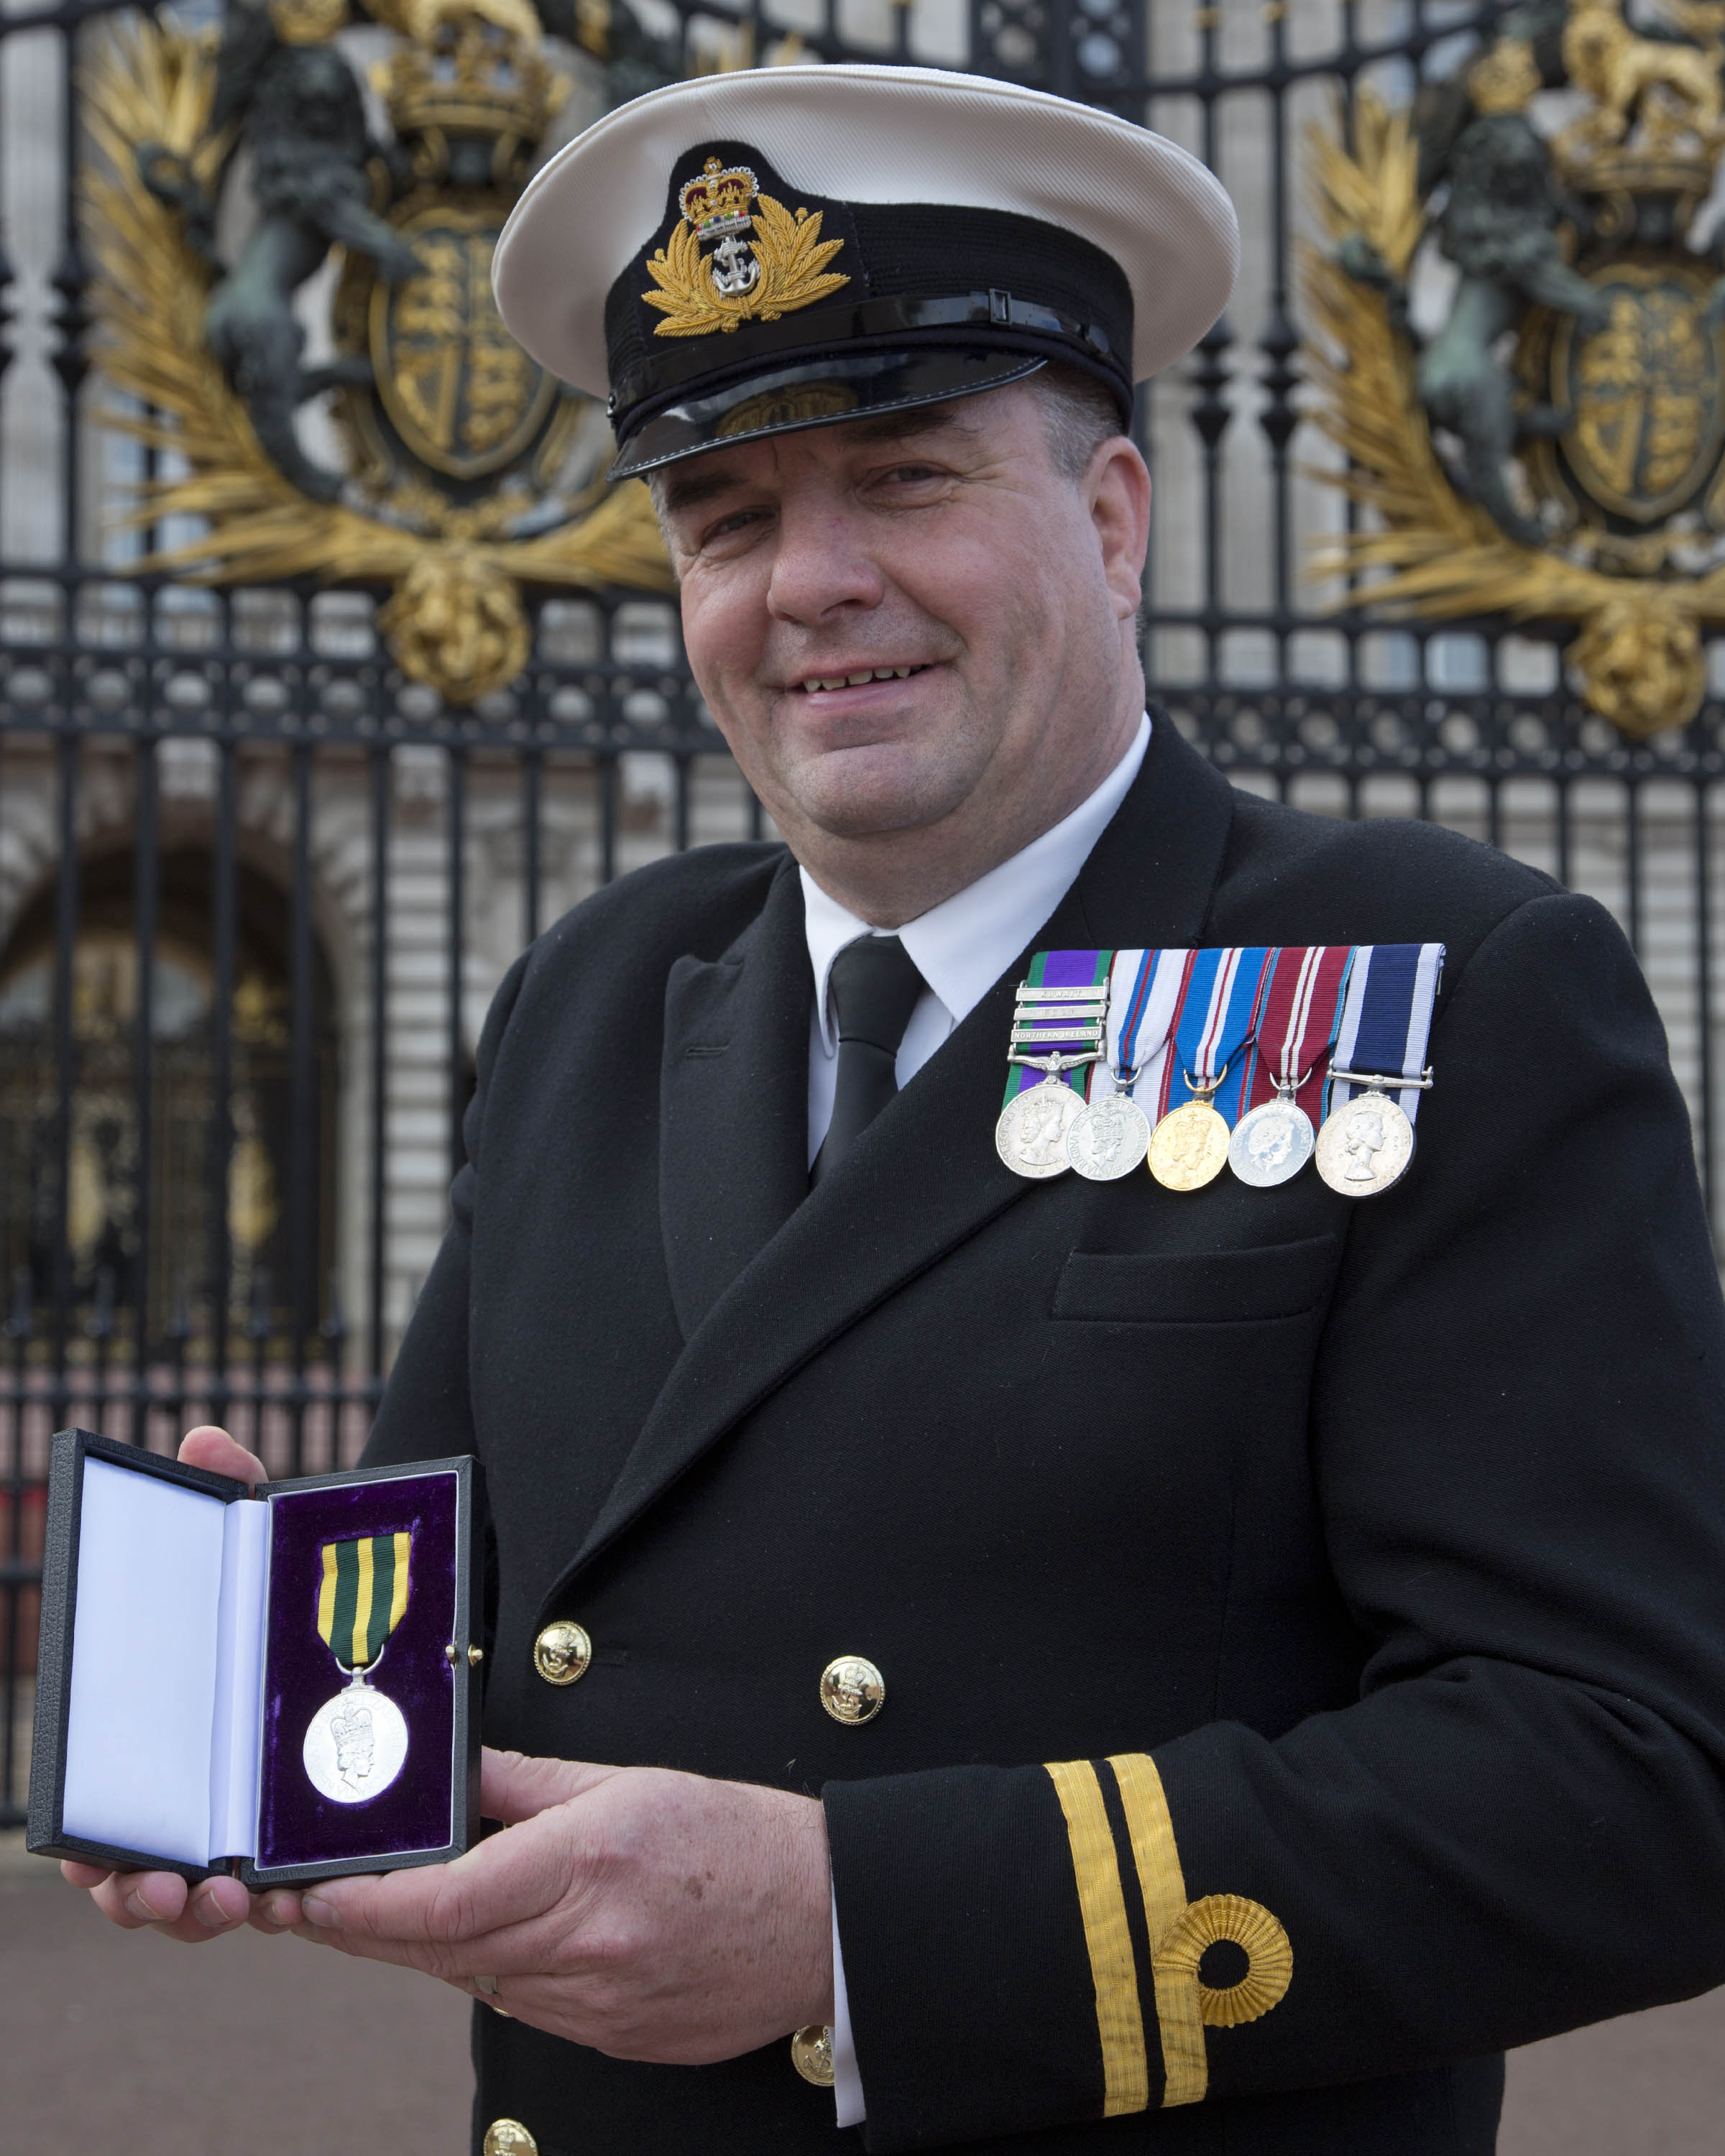 'Jim Hawkins' collects medal at the palace